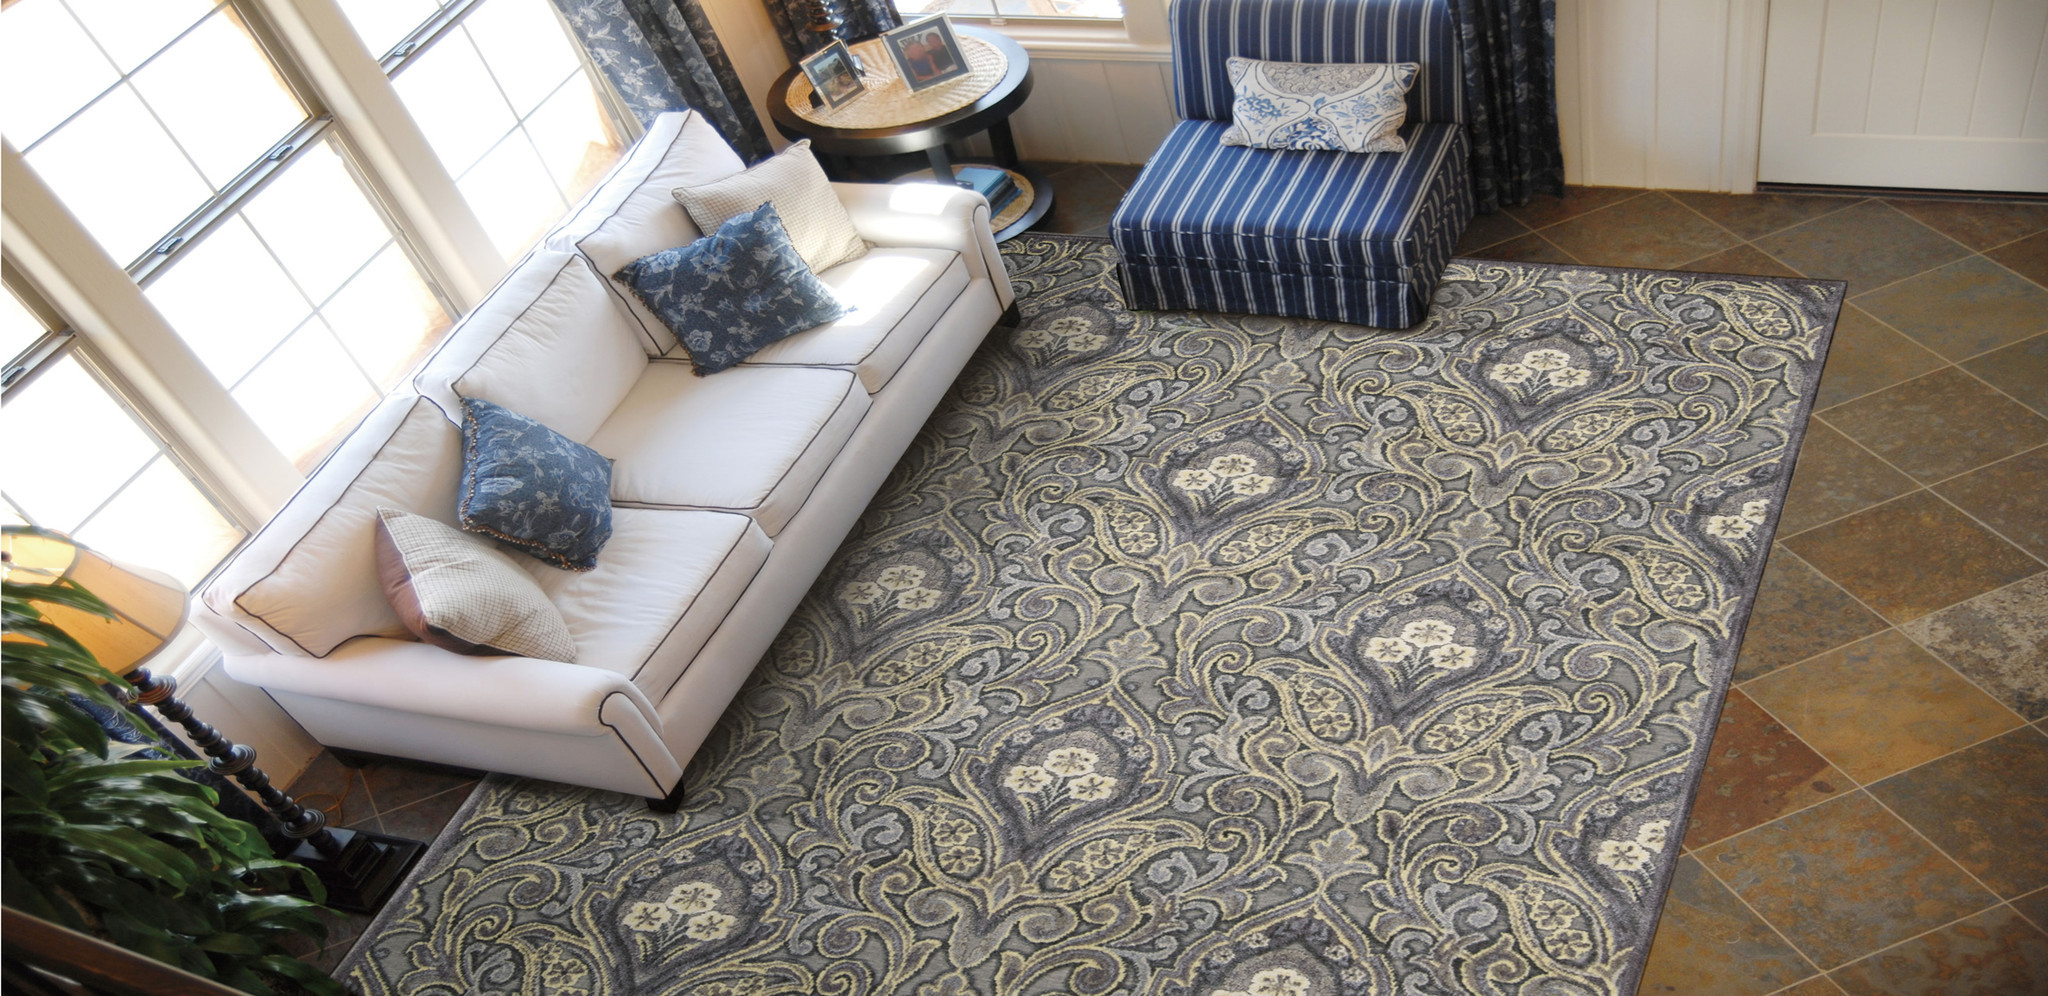 Decorating have a wonderful floor with nourison rugs ideas graphic illusions collection area rug in grey damask design by nourison rugs on brown tile floor dailygadgetfo Gallery